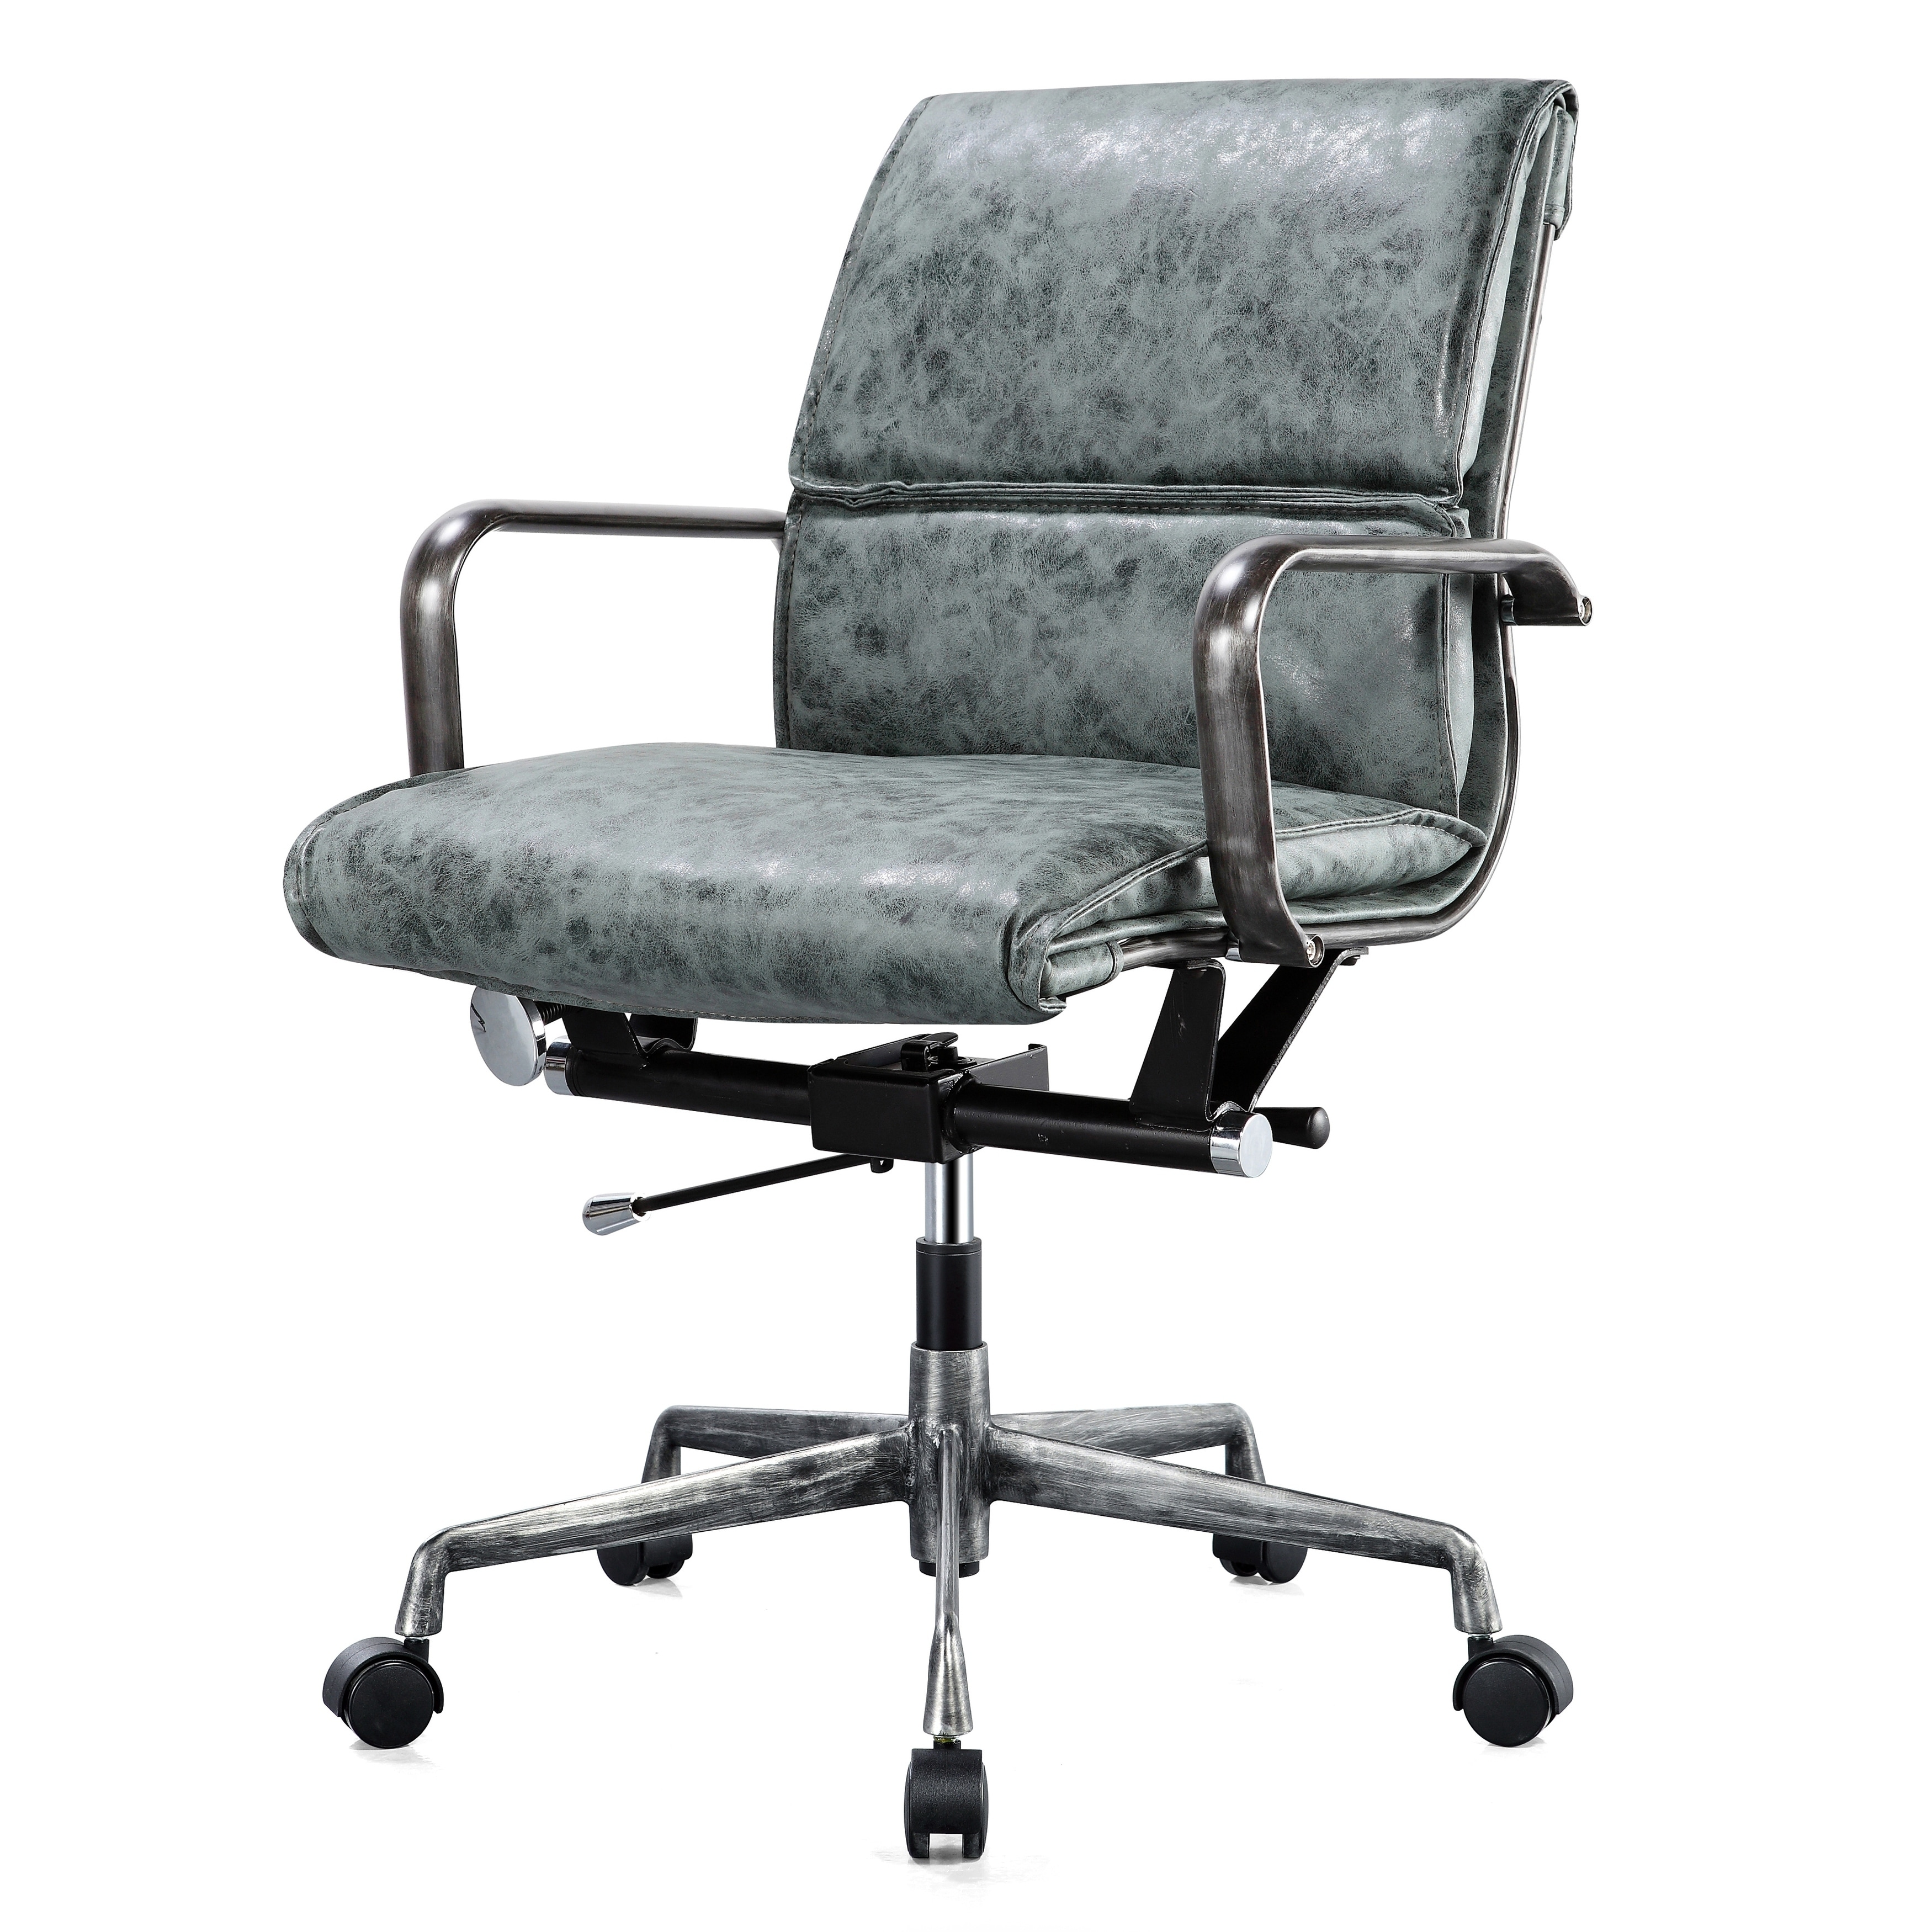 shop m330 padded vegan leather office chair, distressed - on sale